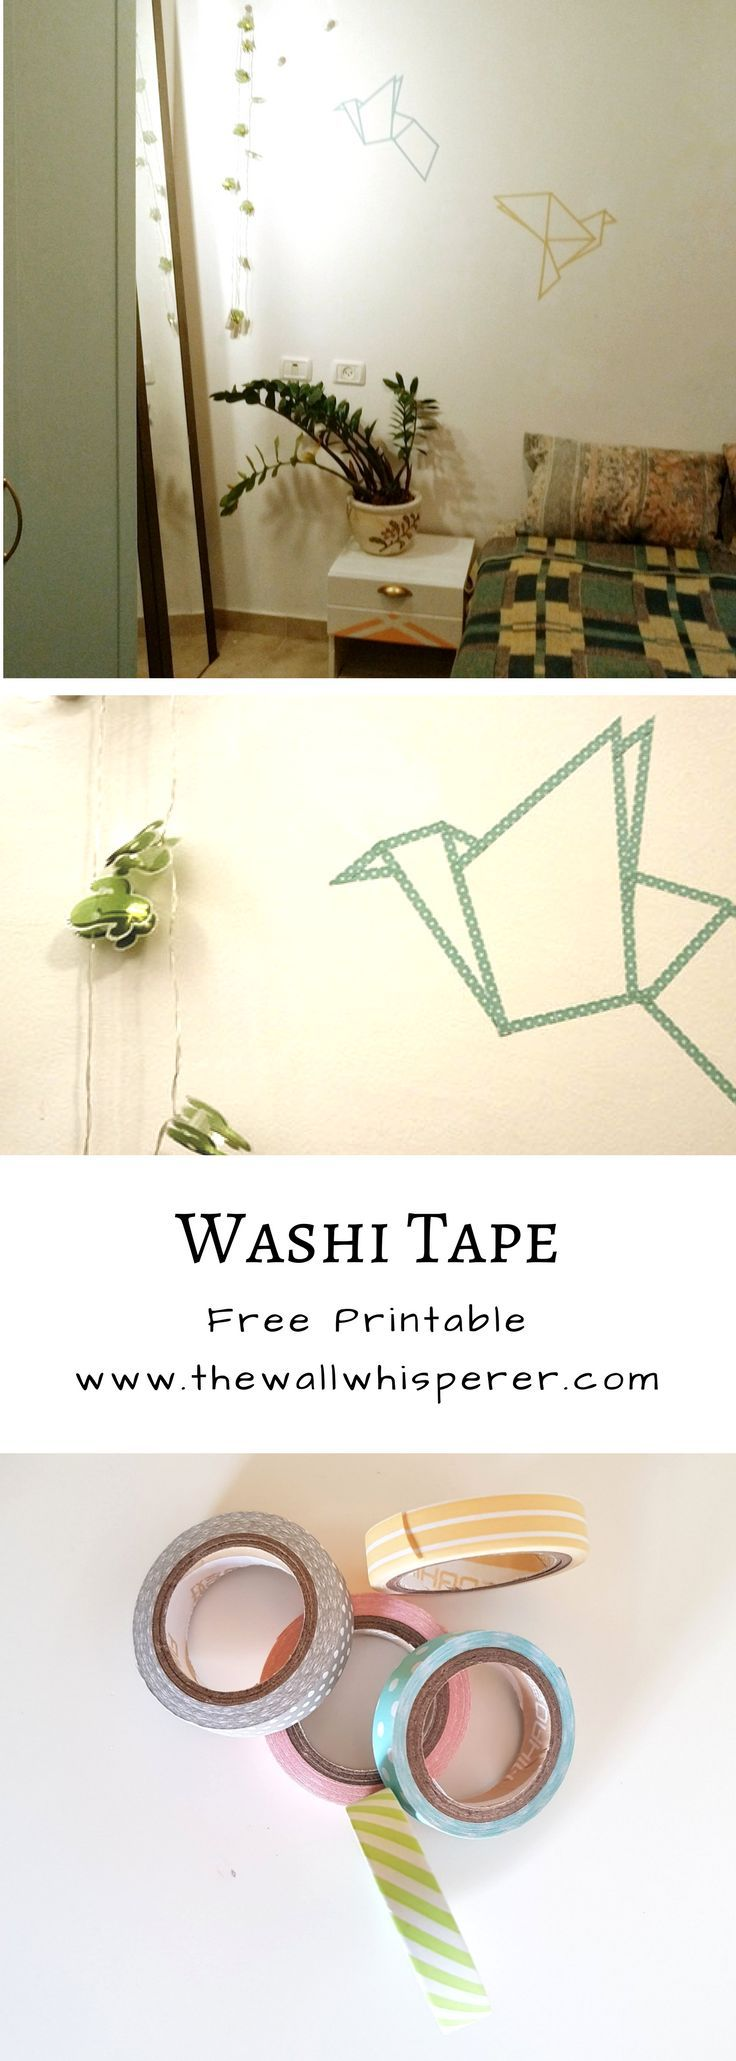 Diy washi tape origami birds share wall art ideas pinterest